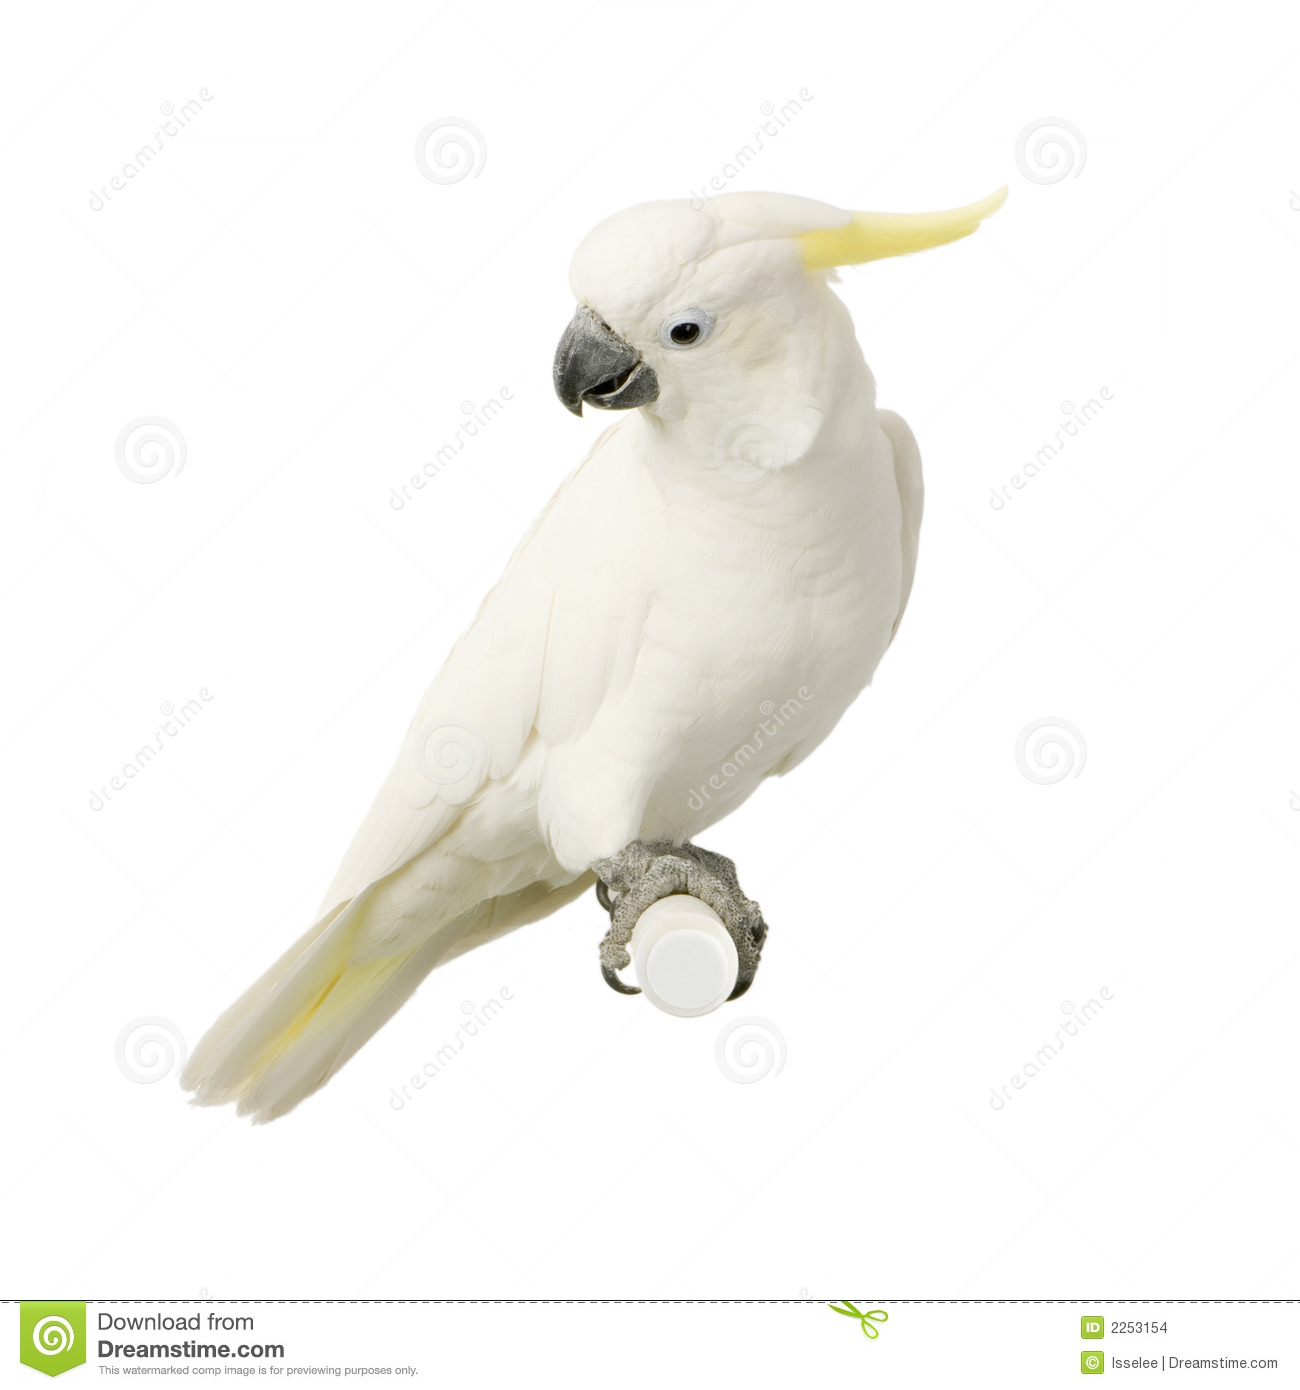 Sulphur-crested Cockatoo clipart #13, Download drawings